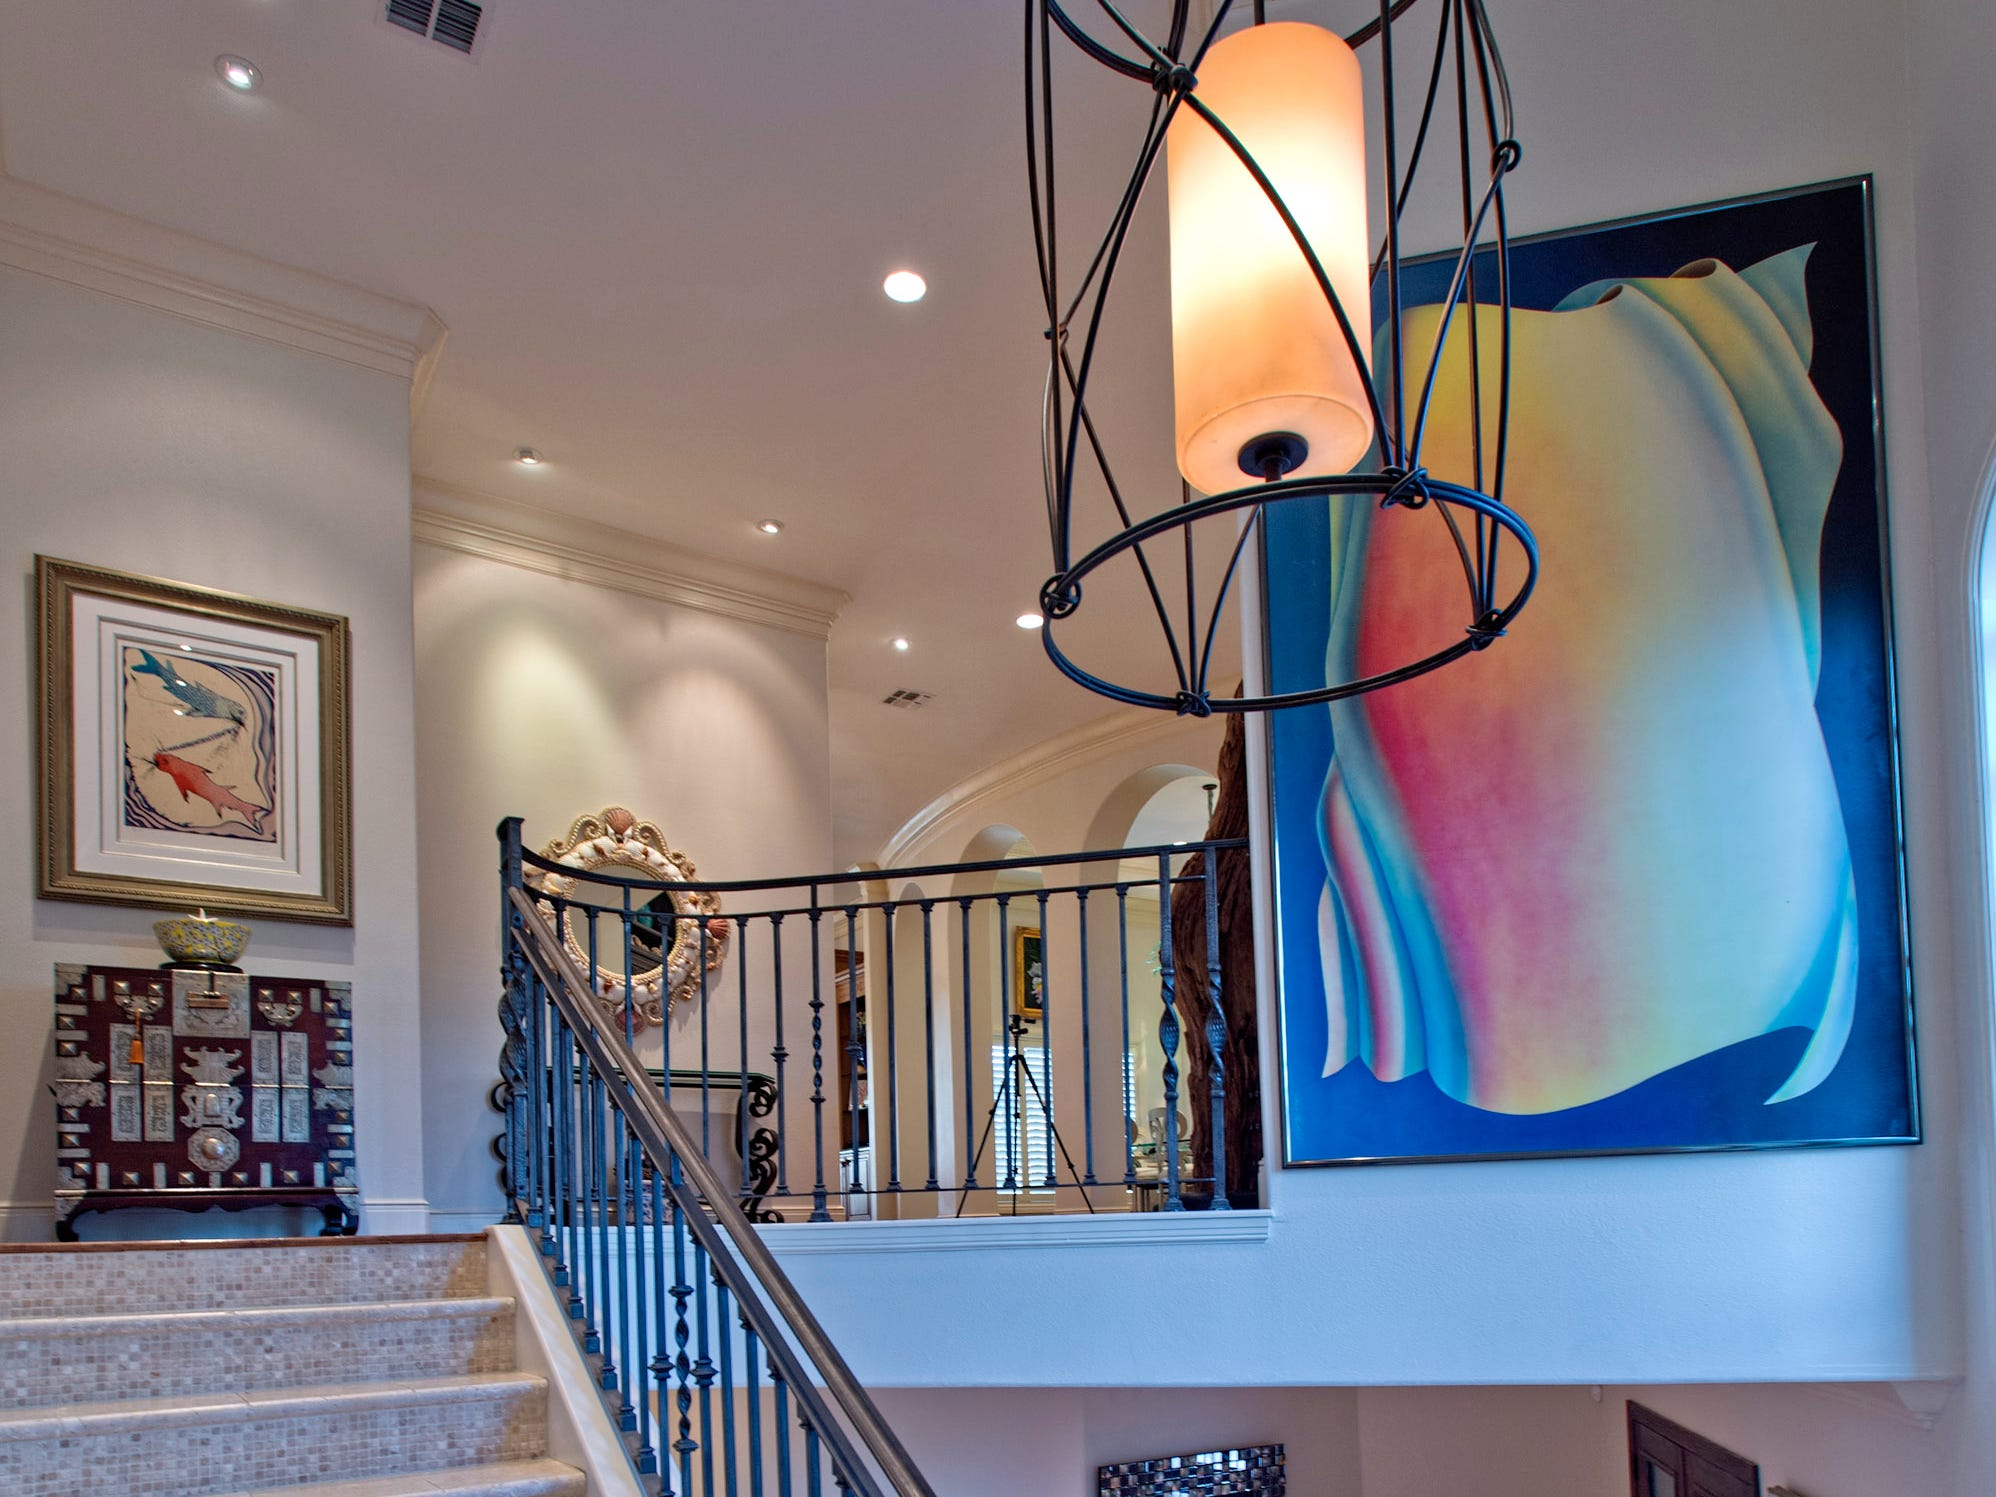 The tiled winding stairway rises up to the second floor living space,.